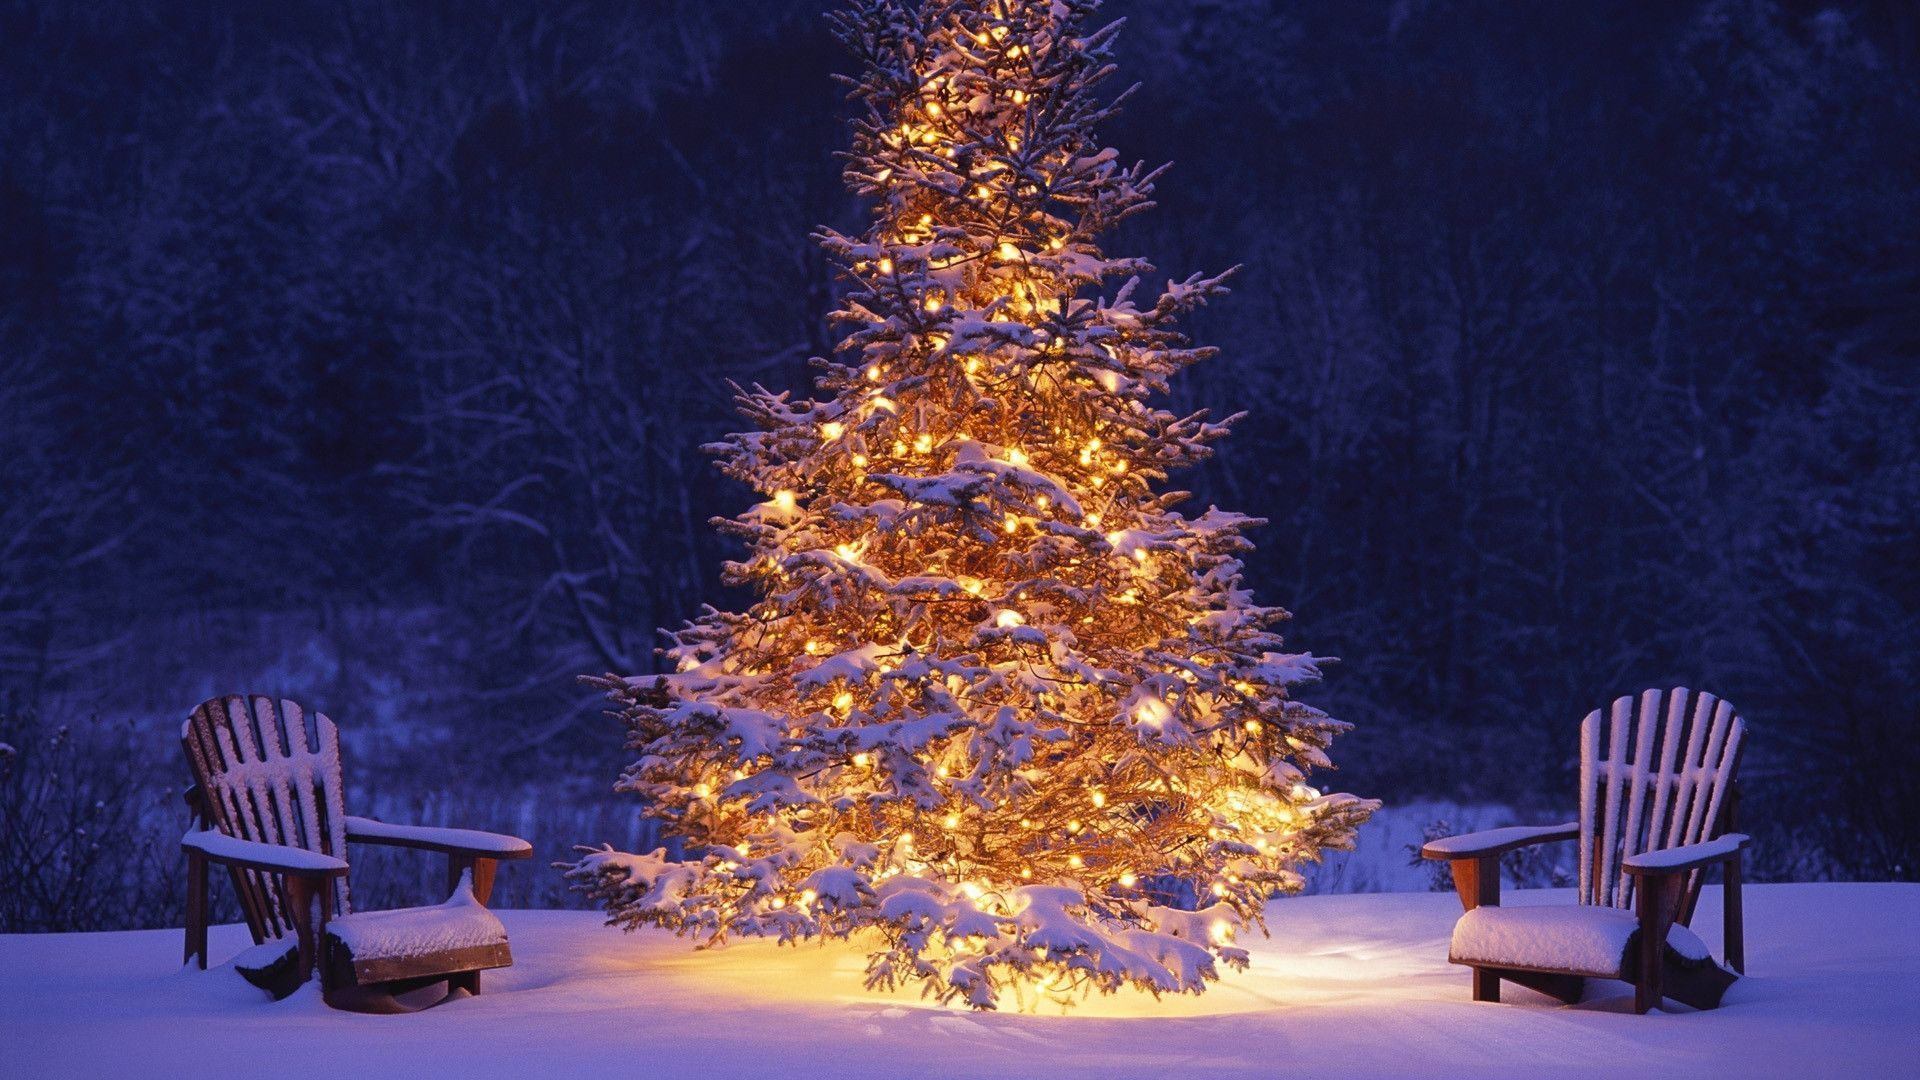 Christmas Tree Wallpaper Backgrounds